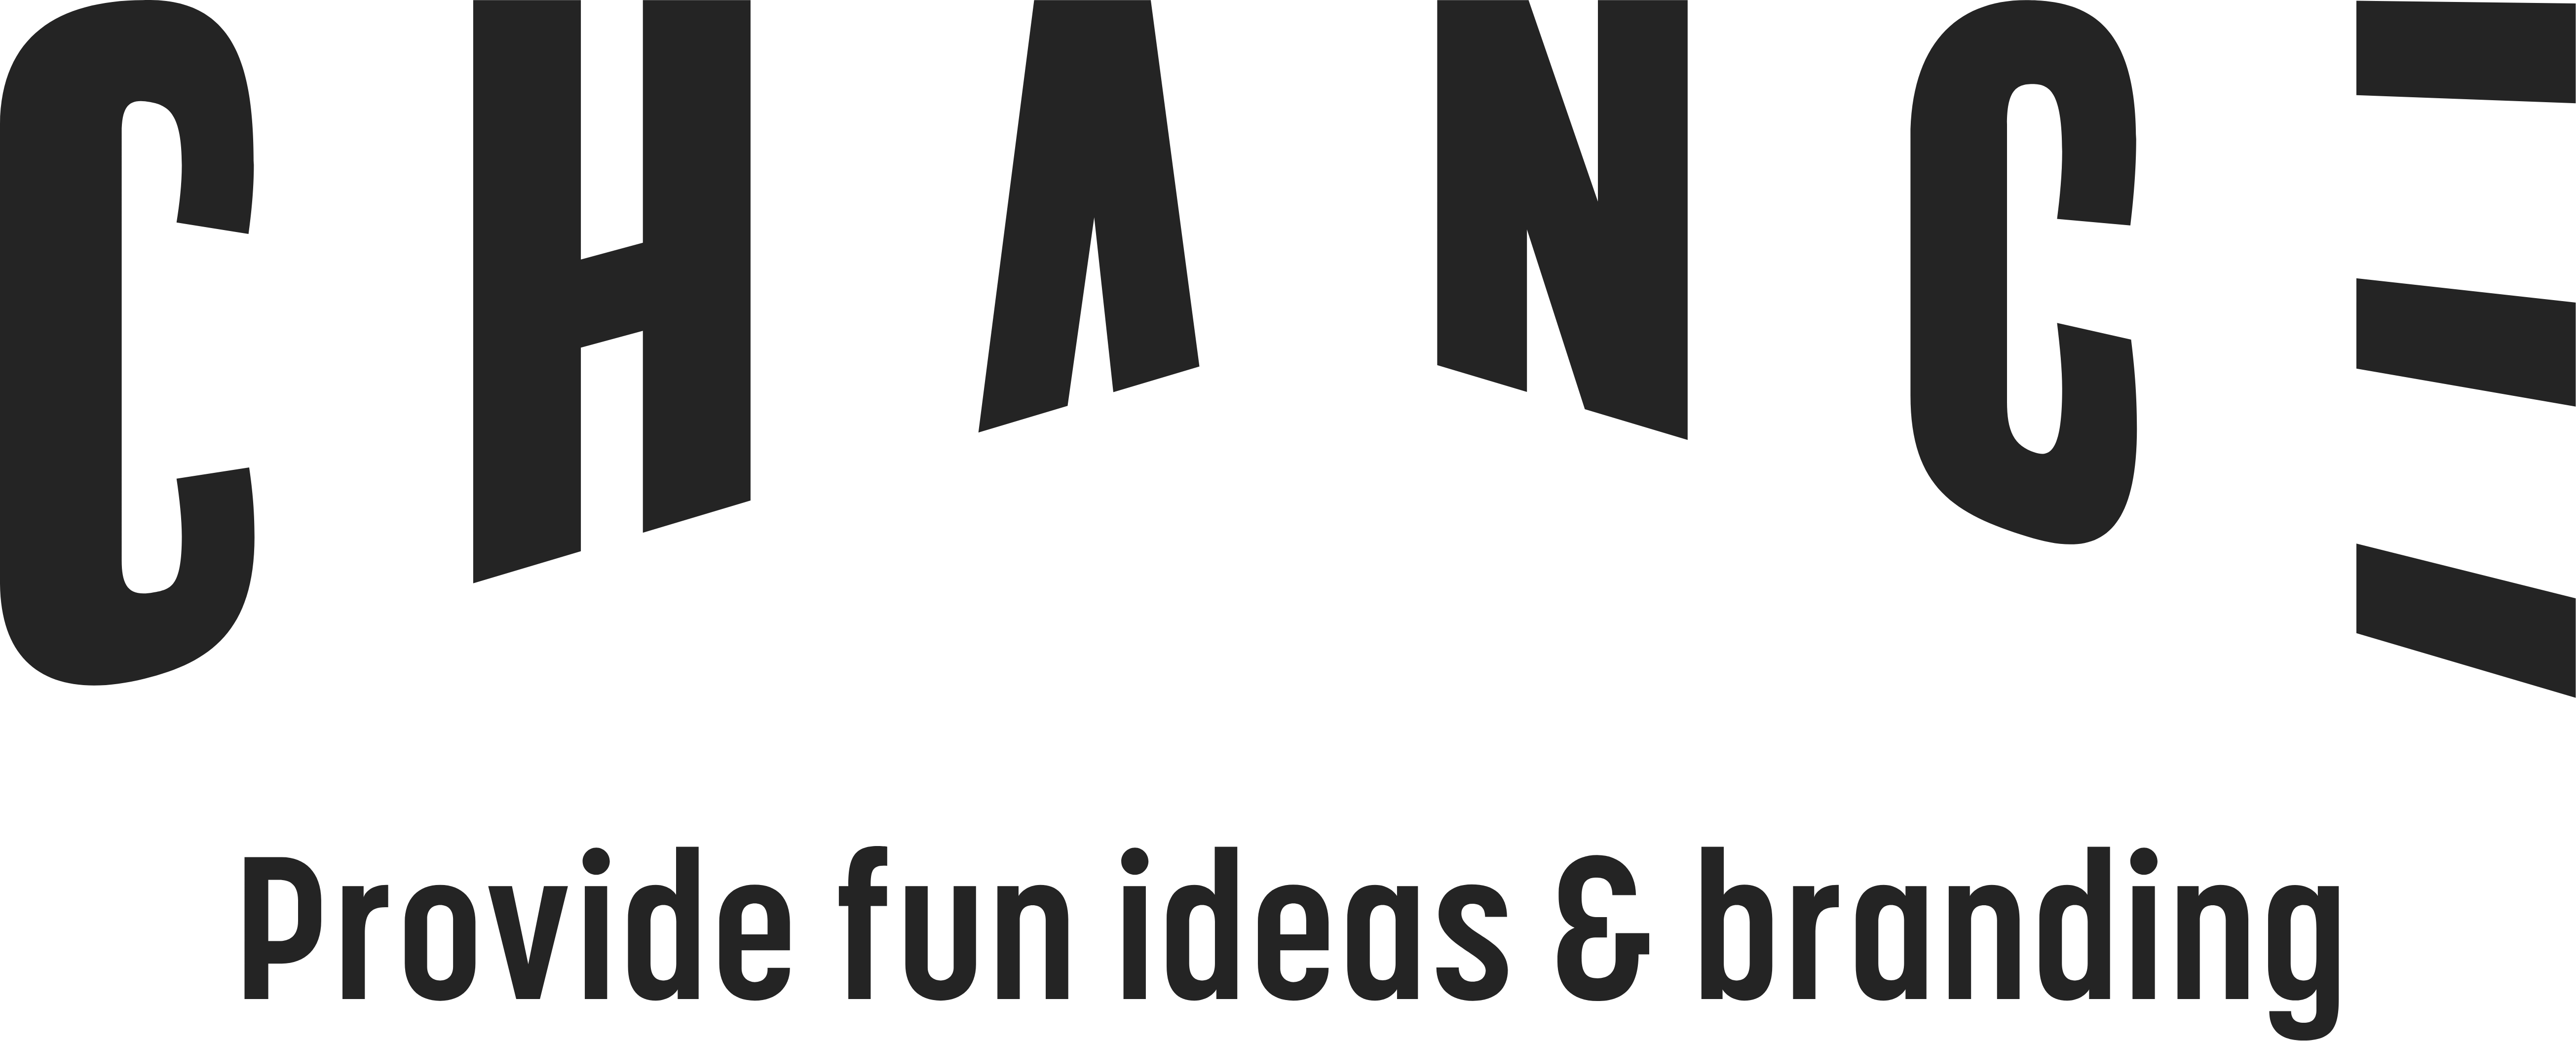 CHANCE Provide fun ideas branding